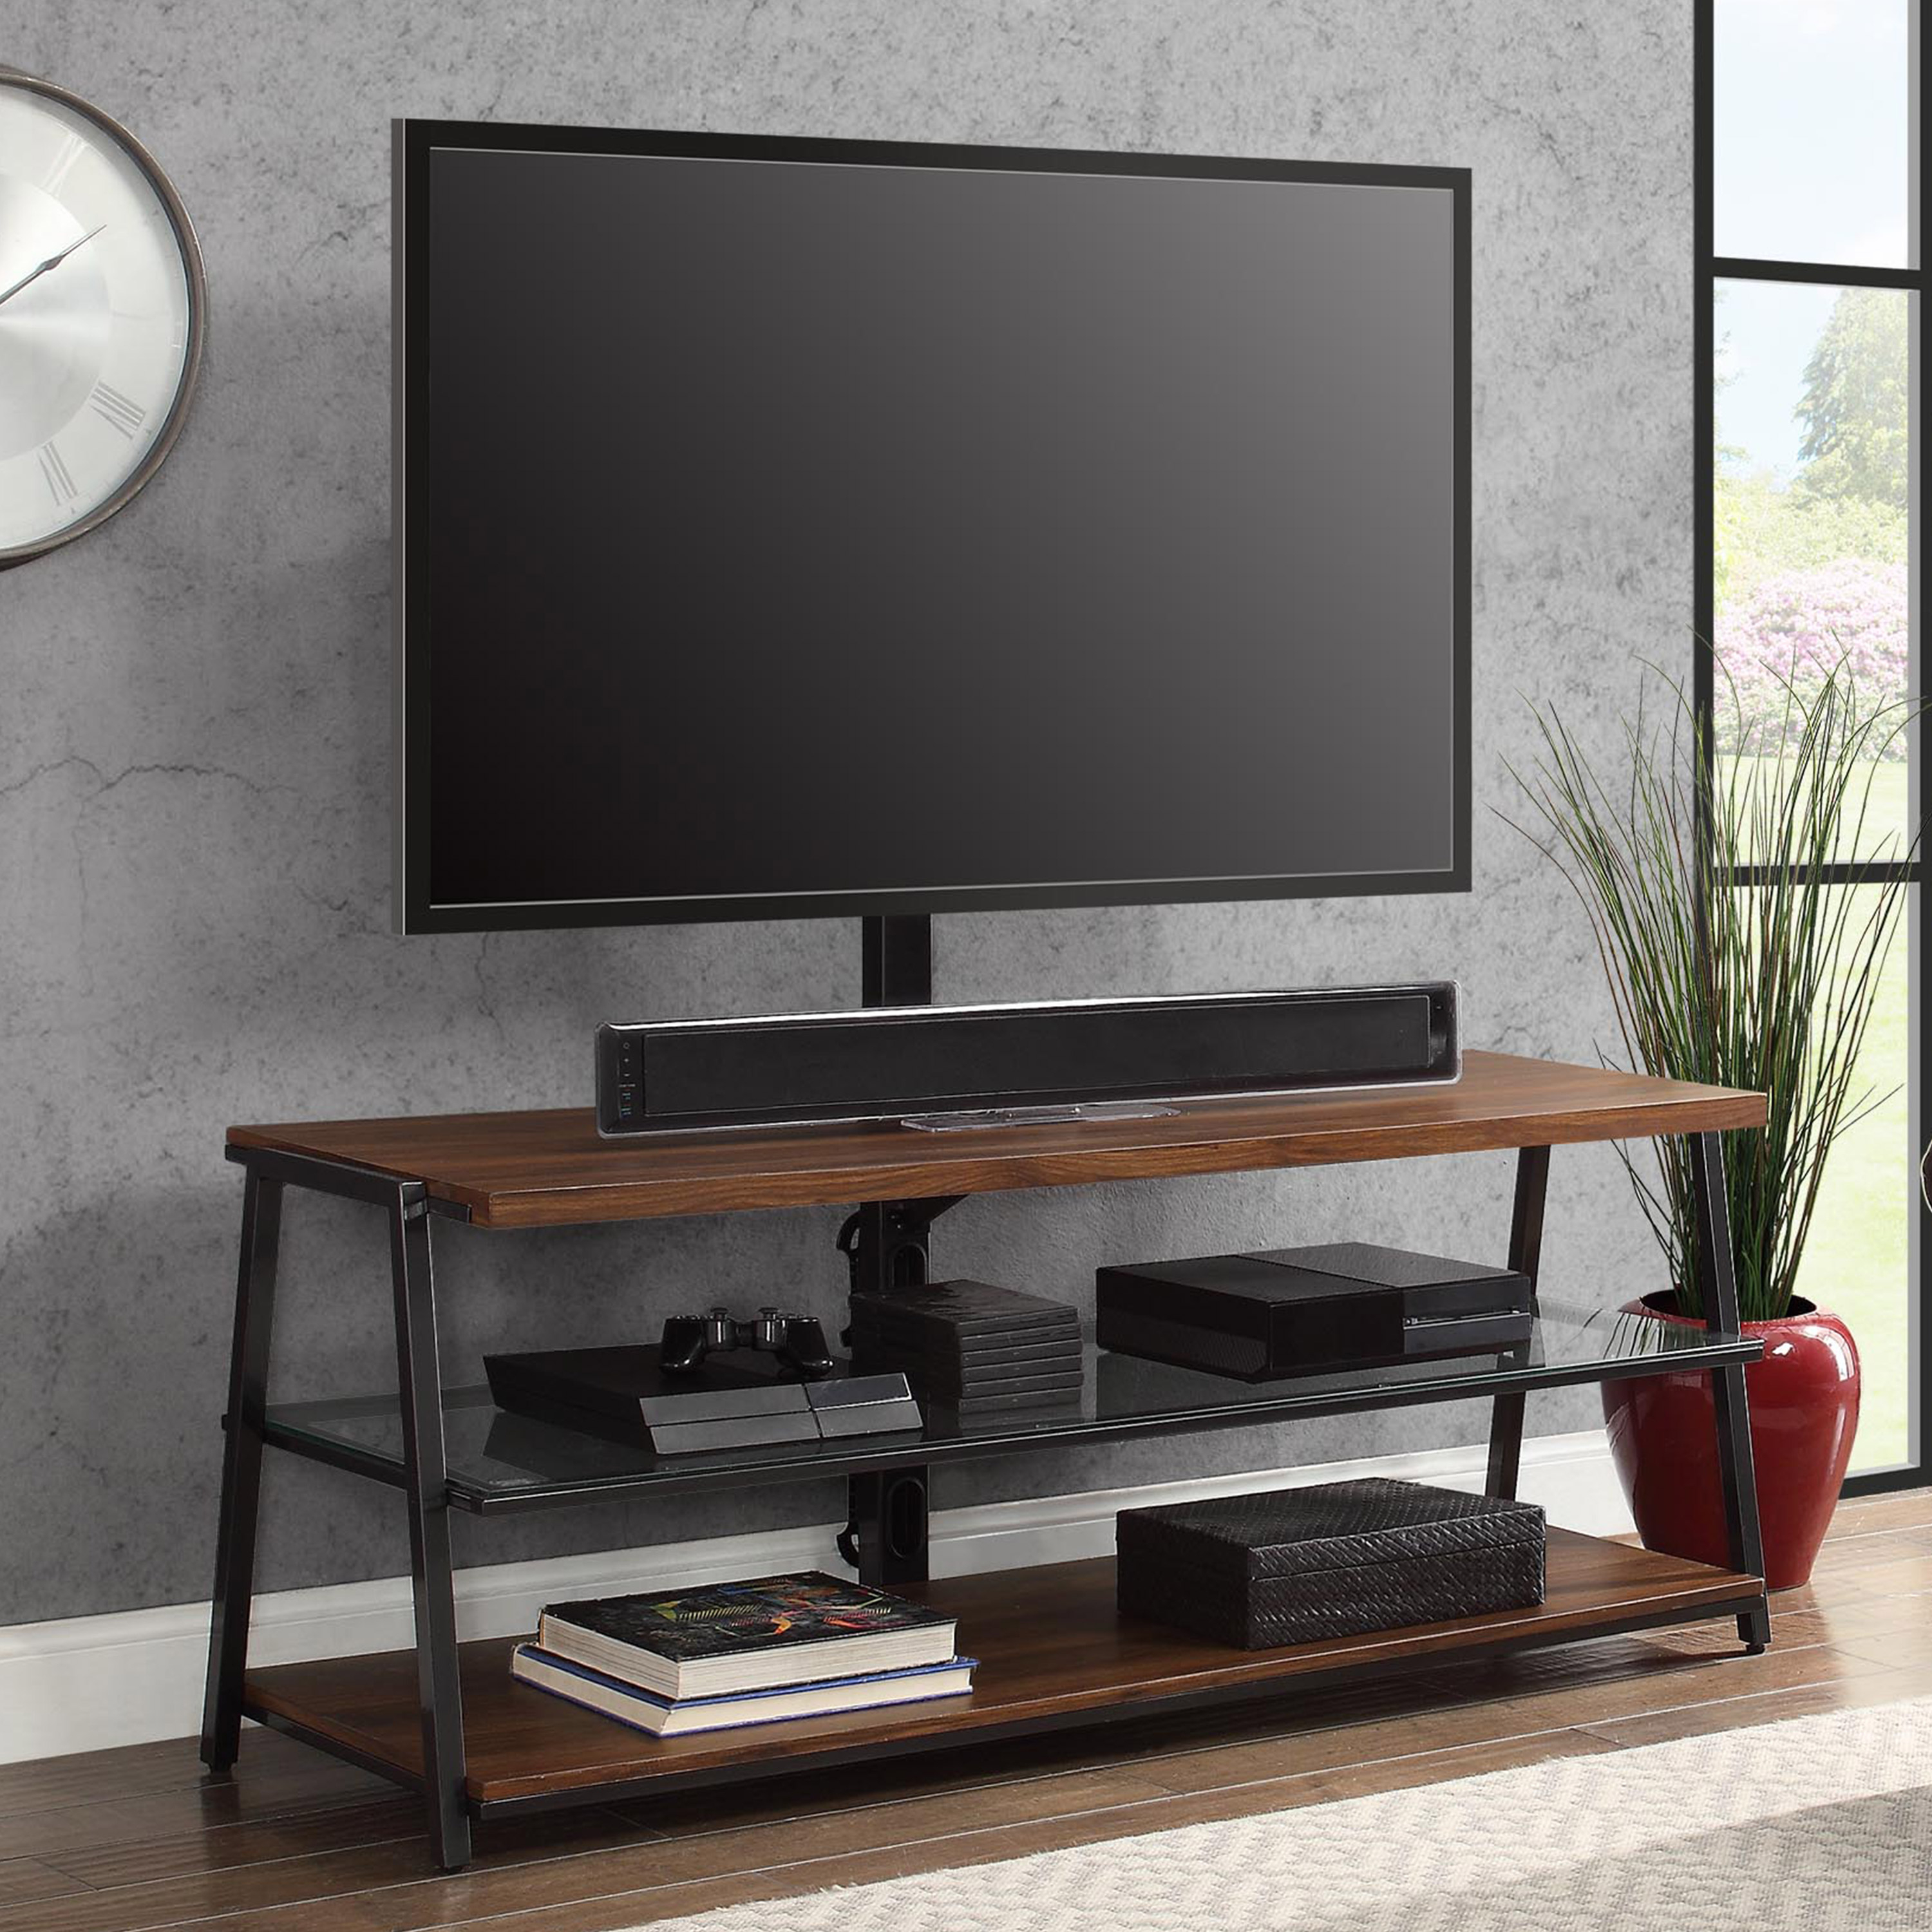 "Mainstays Arris 3 In 1 Tv Stand For Televisions Up To 70"", Perfect Regarding Canyon 64 Inch Tv Stands (View 8 of 20)"